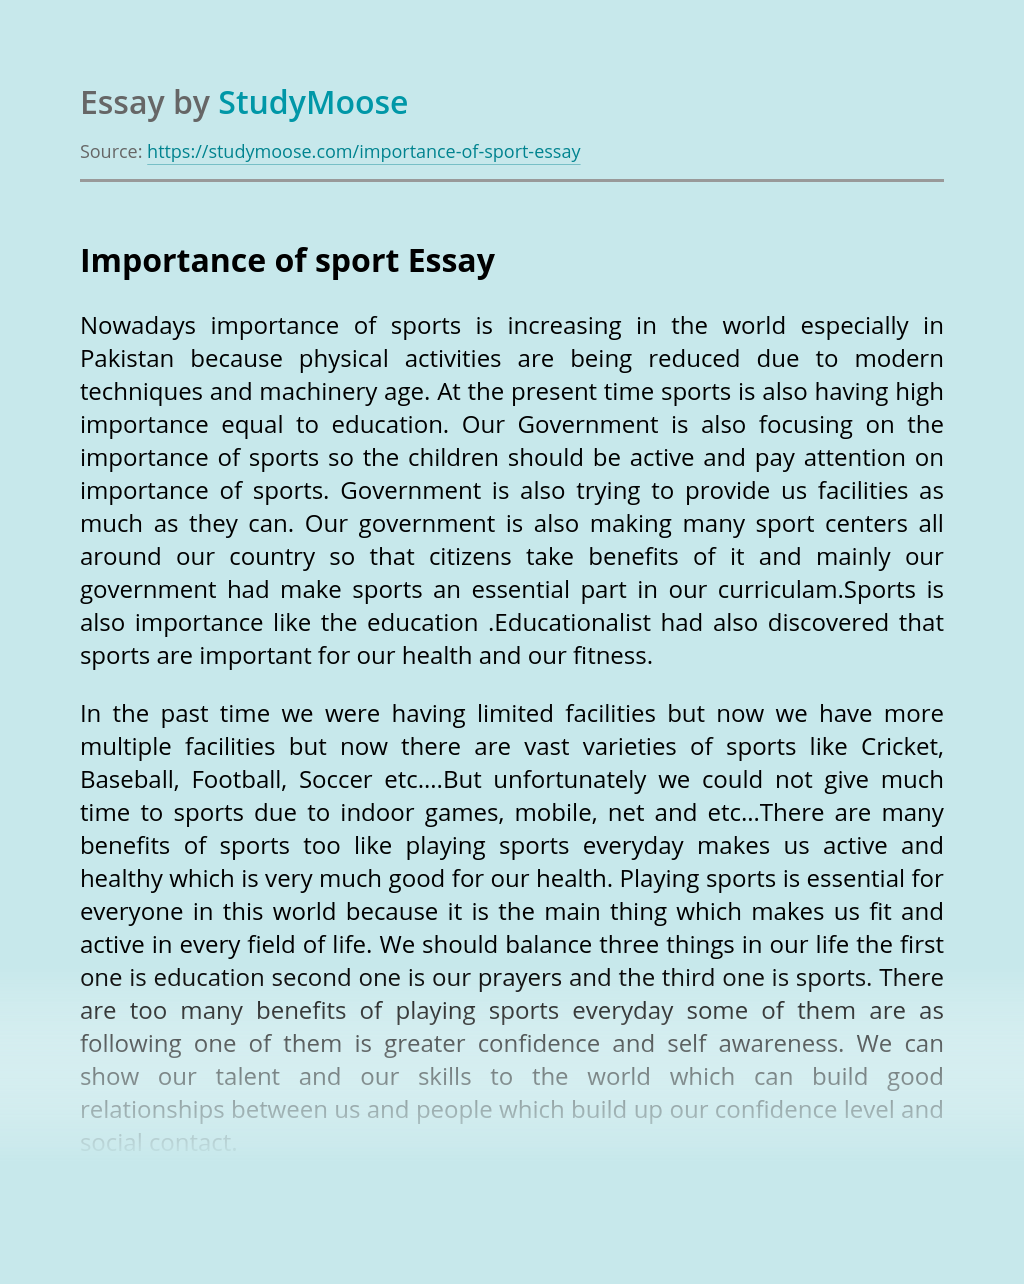 Importance of sport